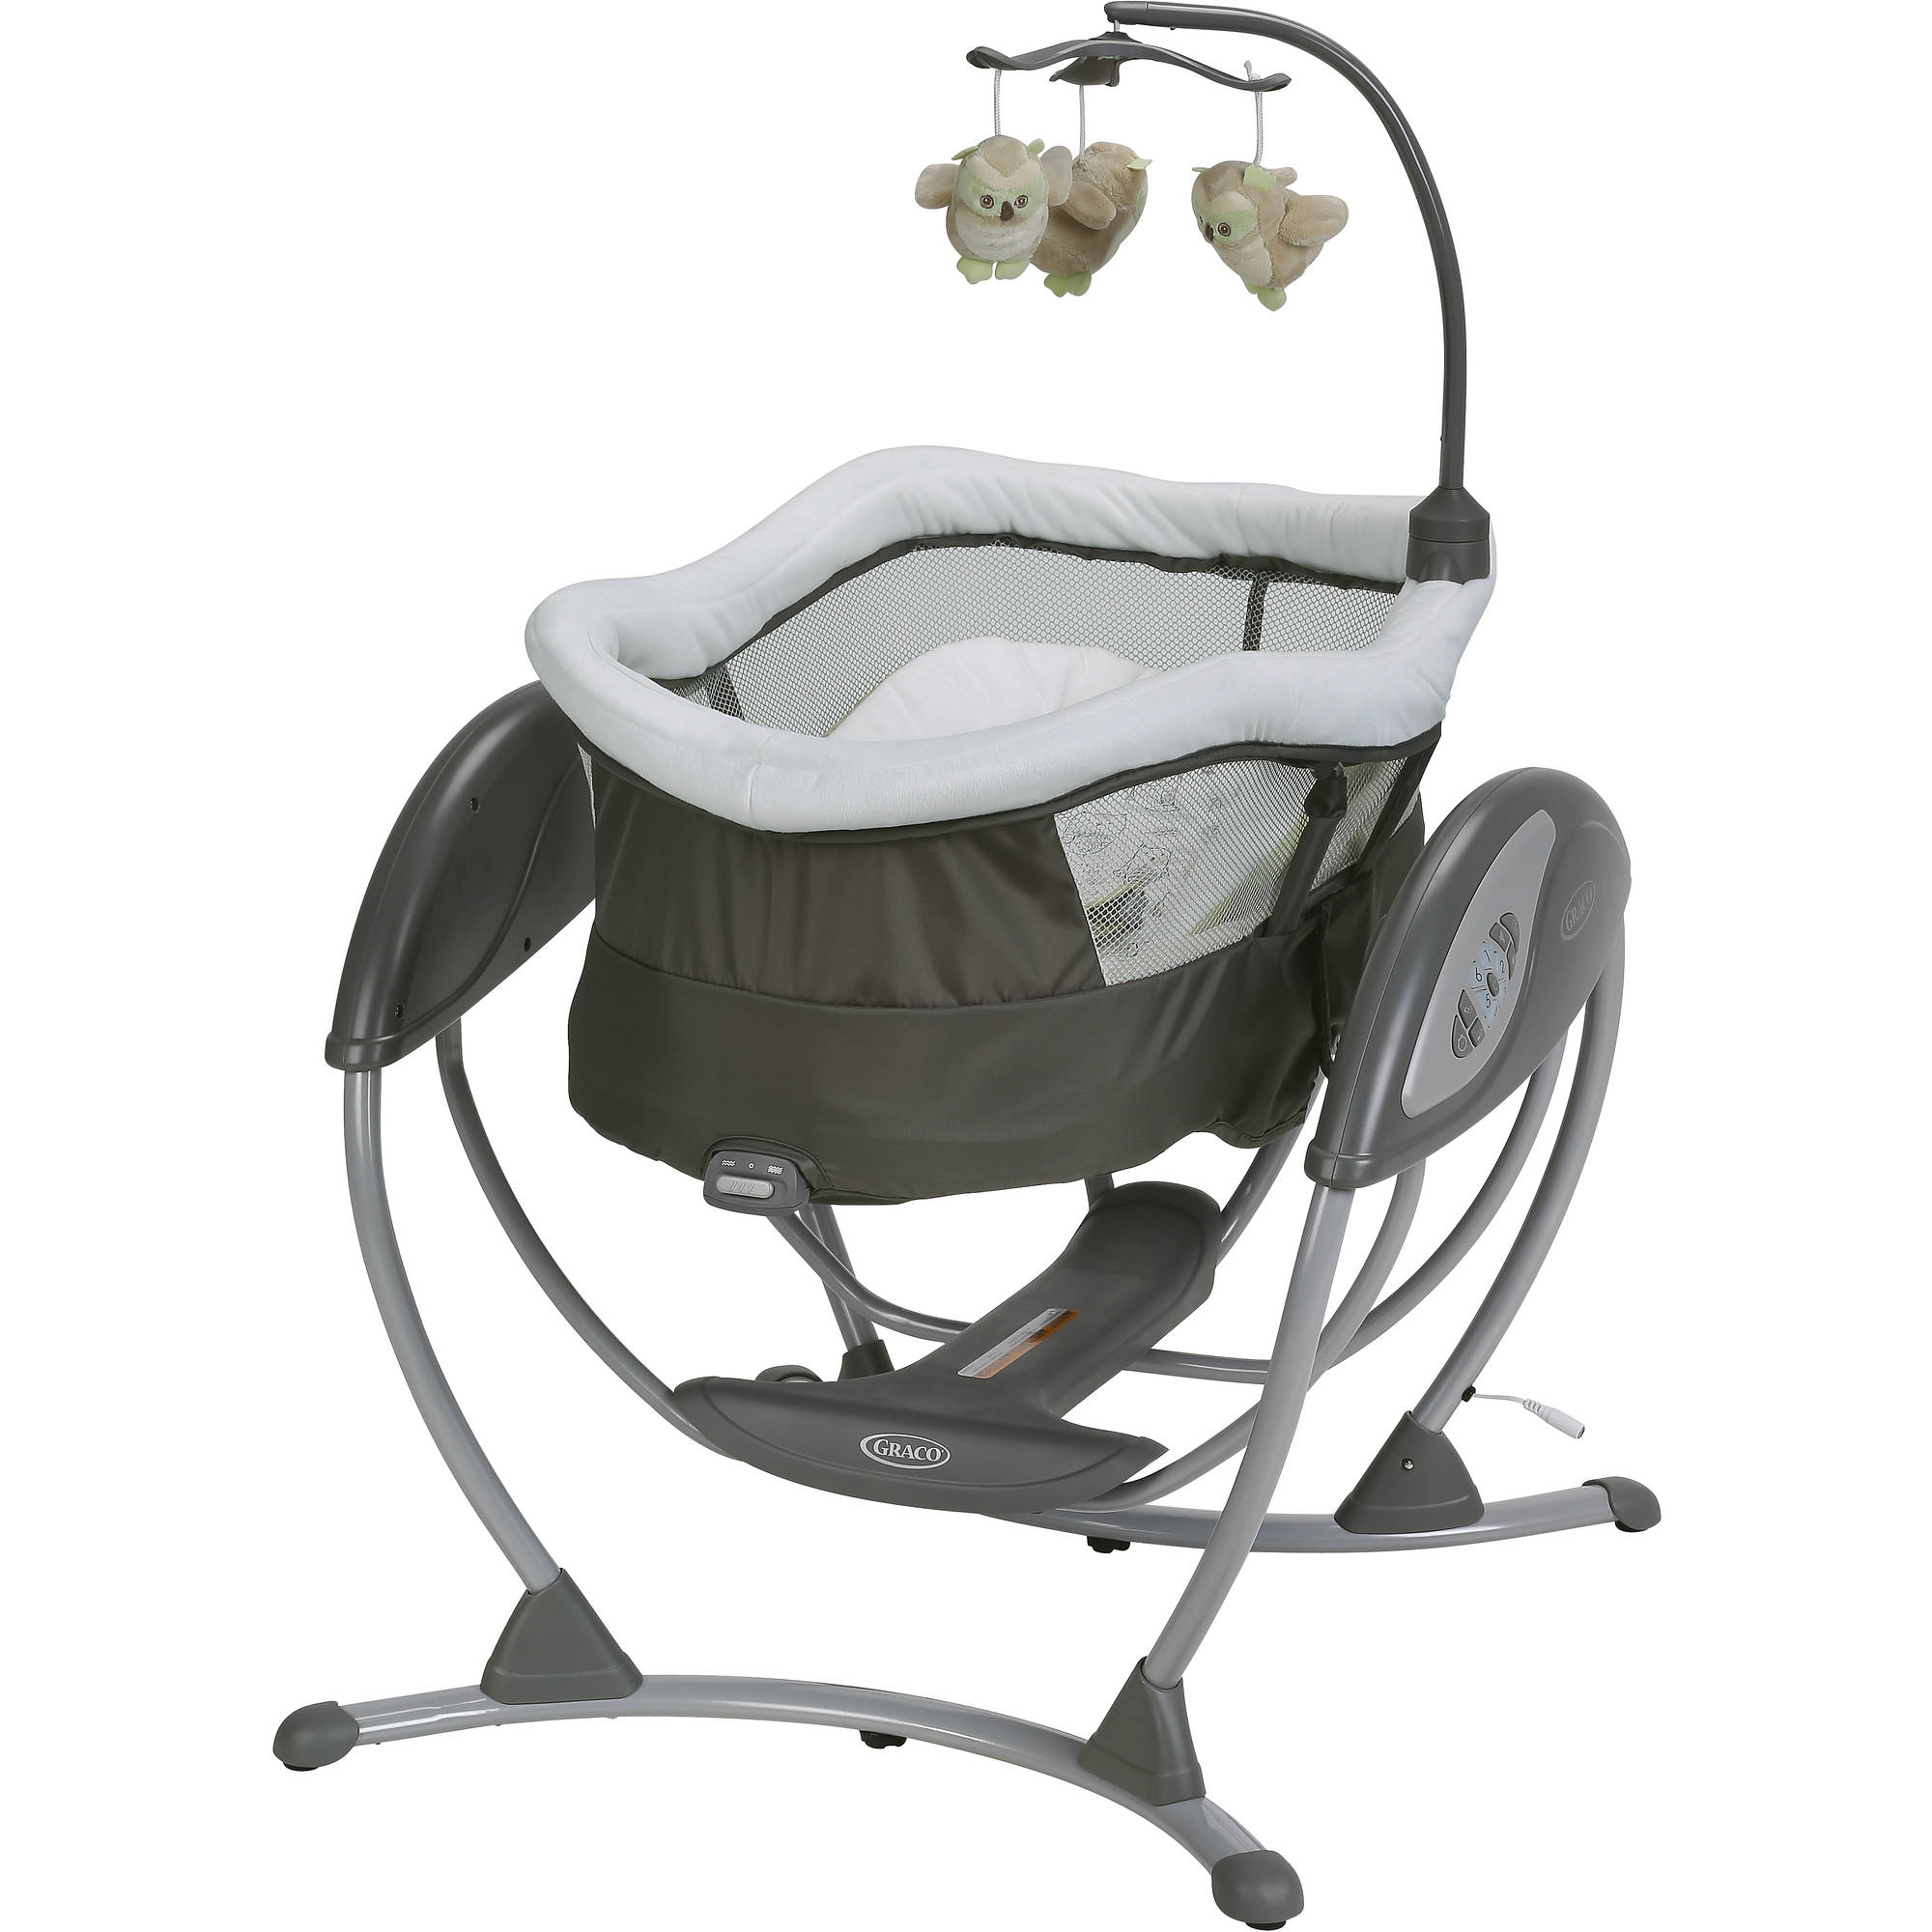 Graco DreamGlider Gliding Swing and Sleeper Baby Swing, Percy